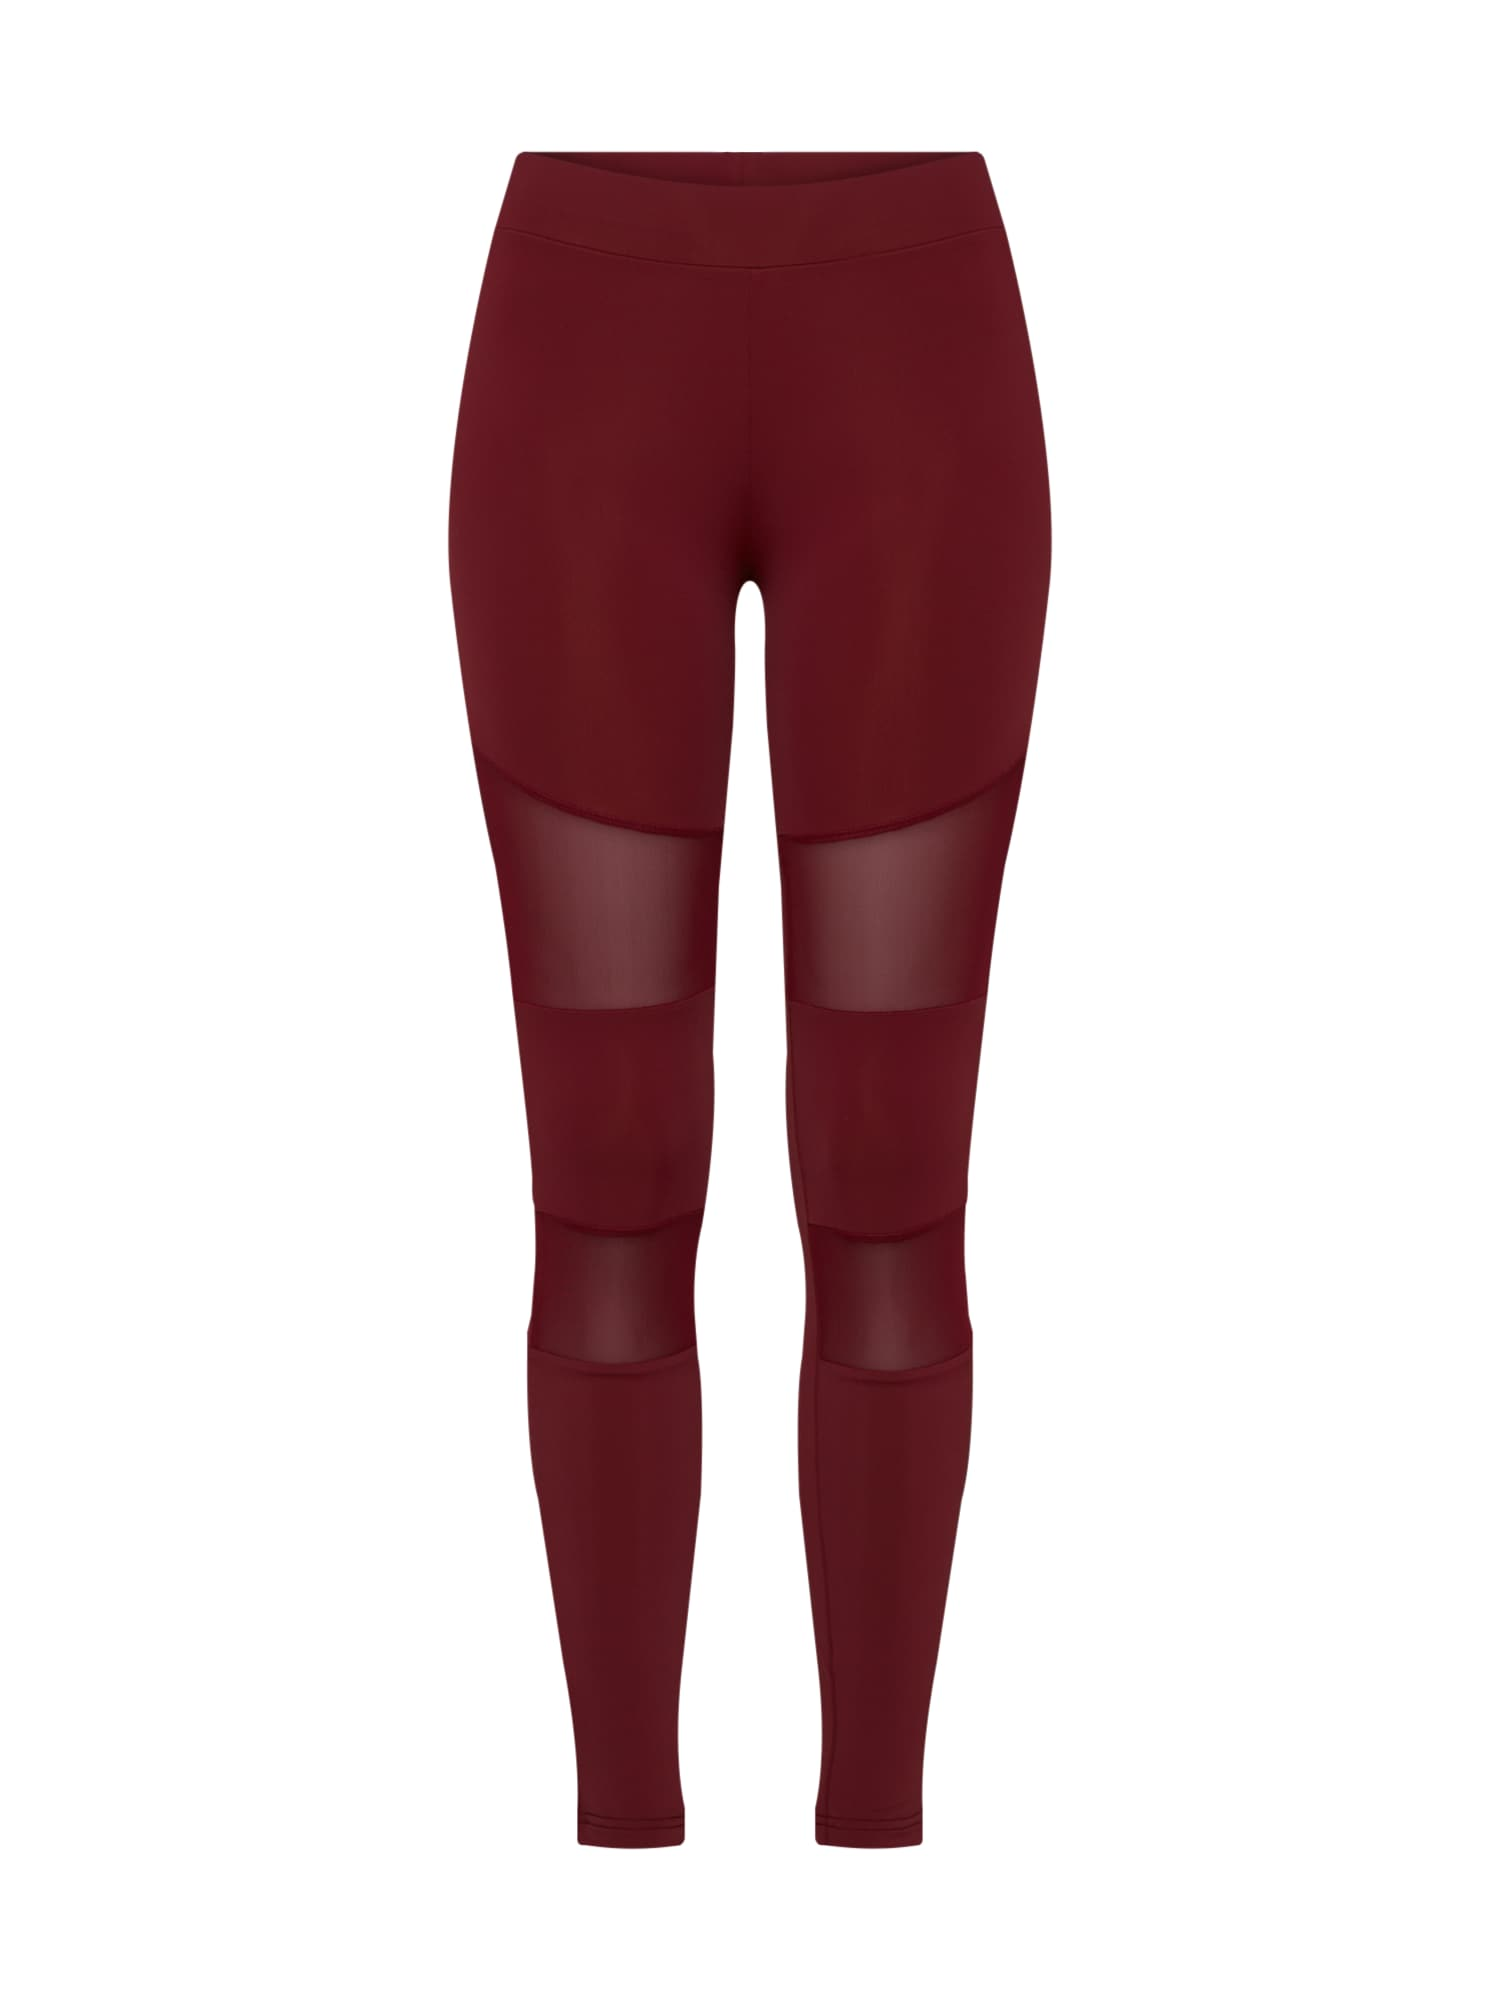 Leggins 'Ladies Tech Mech' | Bekleidung > Homewear > Leggings | Urban Classics